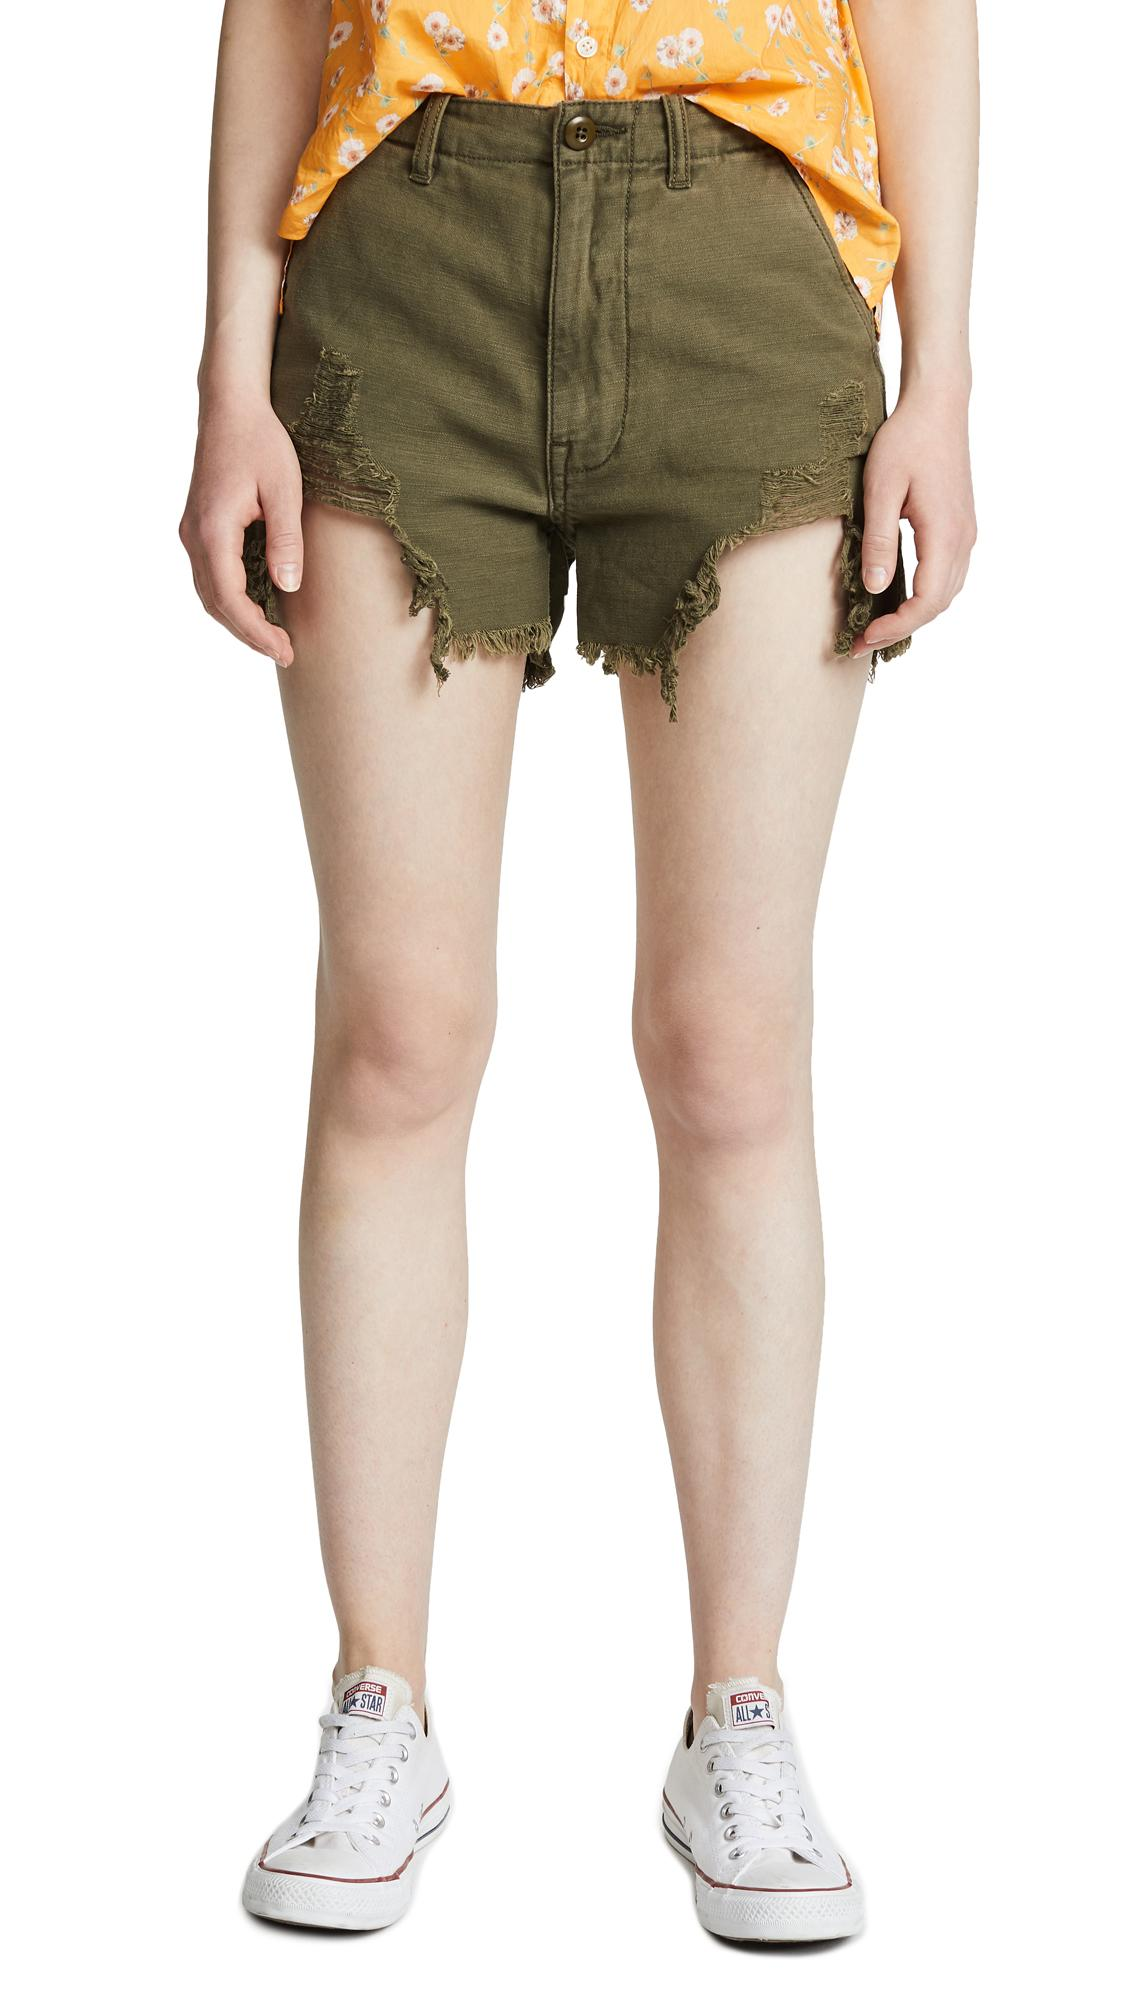 R13 Distressed Camp Shorts In Fatigue Olive